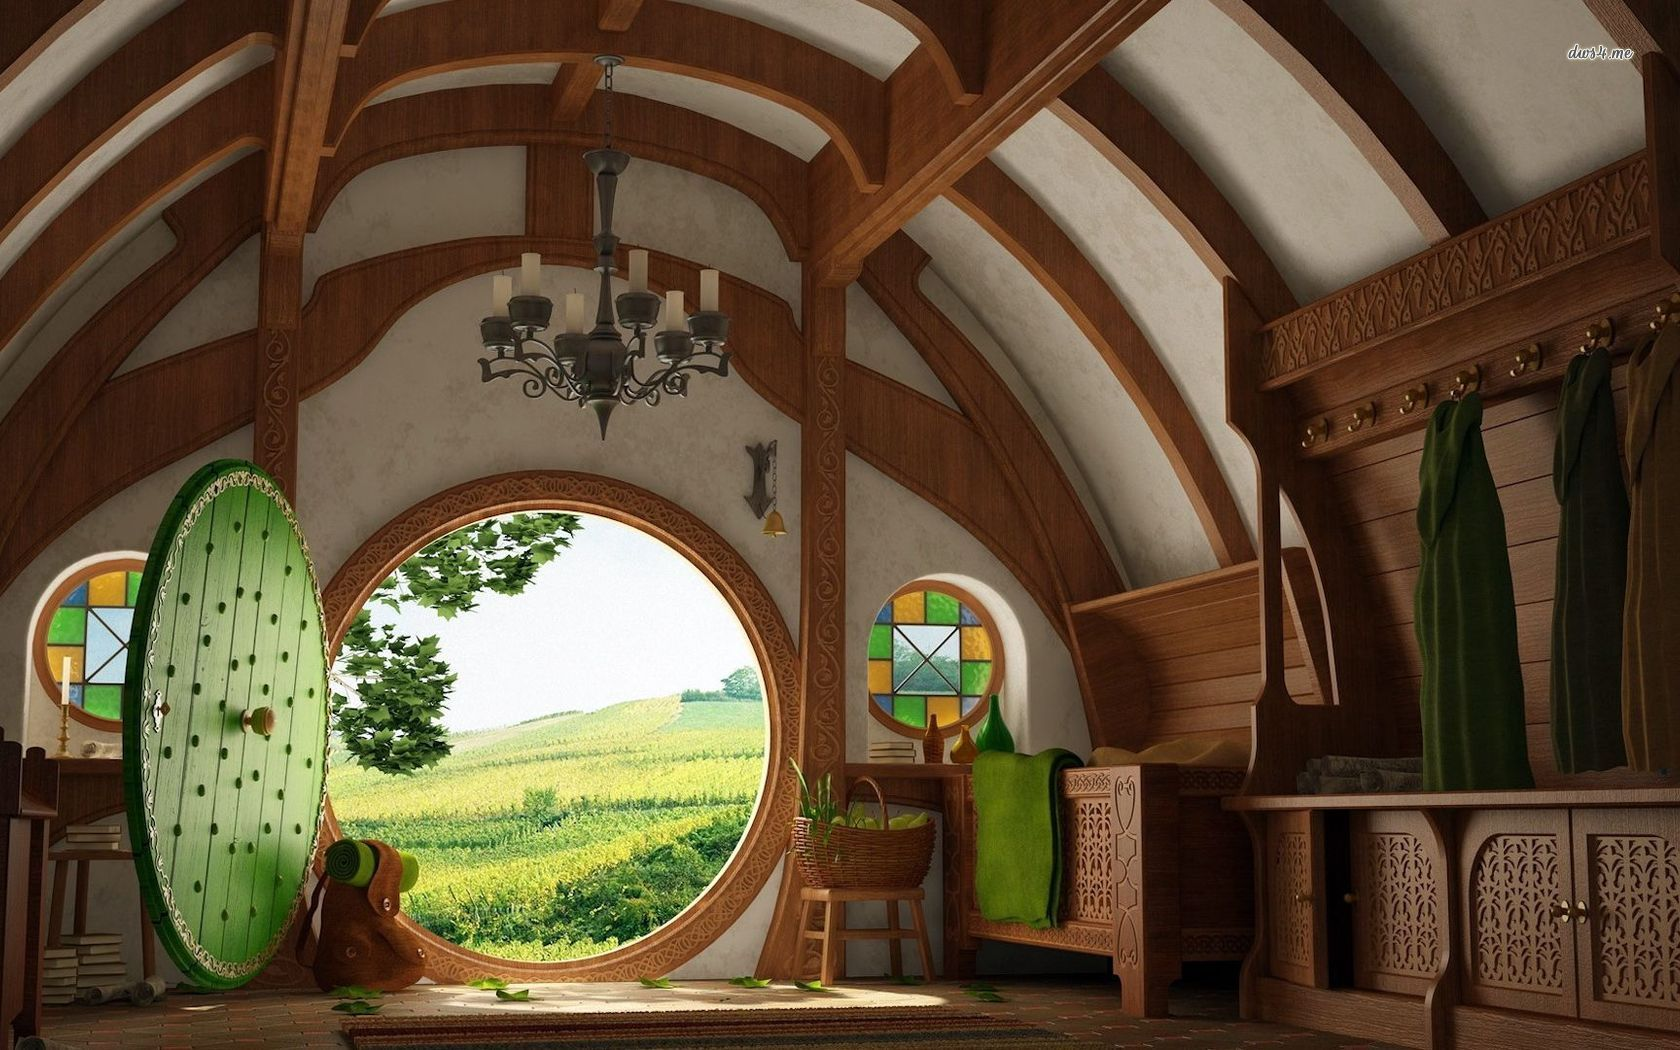 Architecture Hobbit House Design With Carving Wooden Hobbit